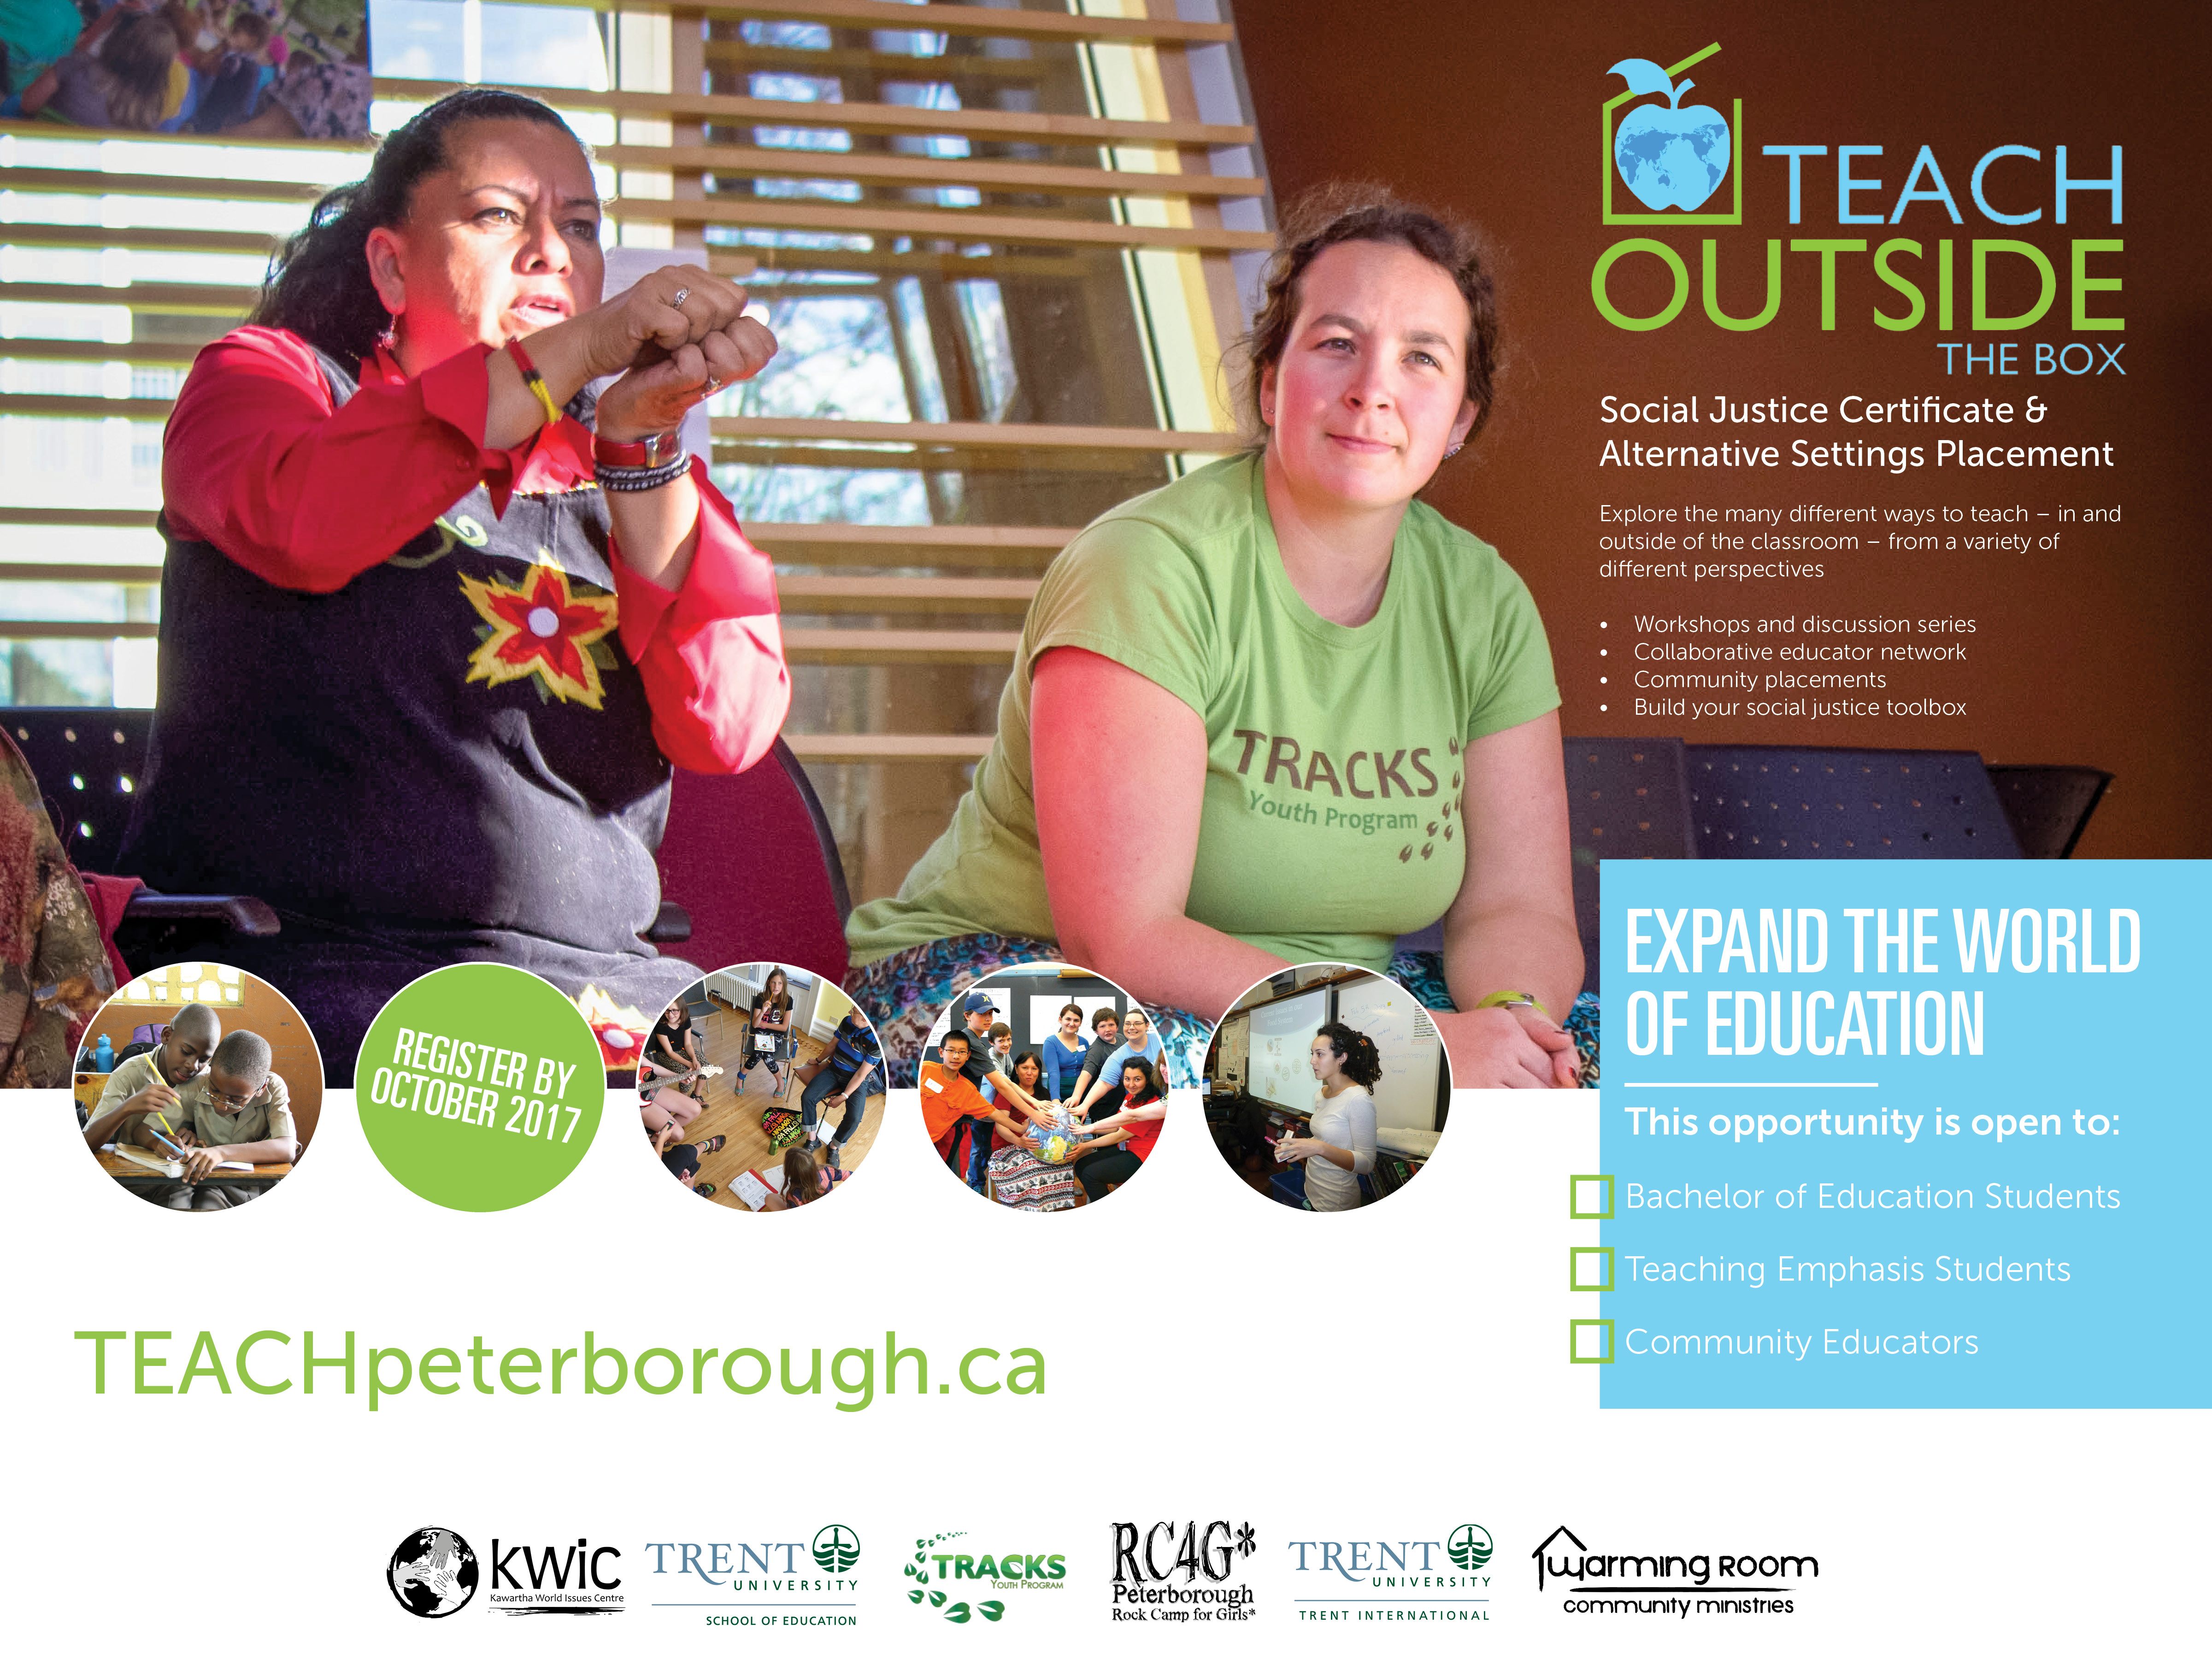 teach outside the box poster with two women speaking in the Gathering Space